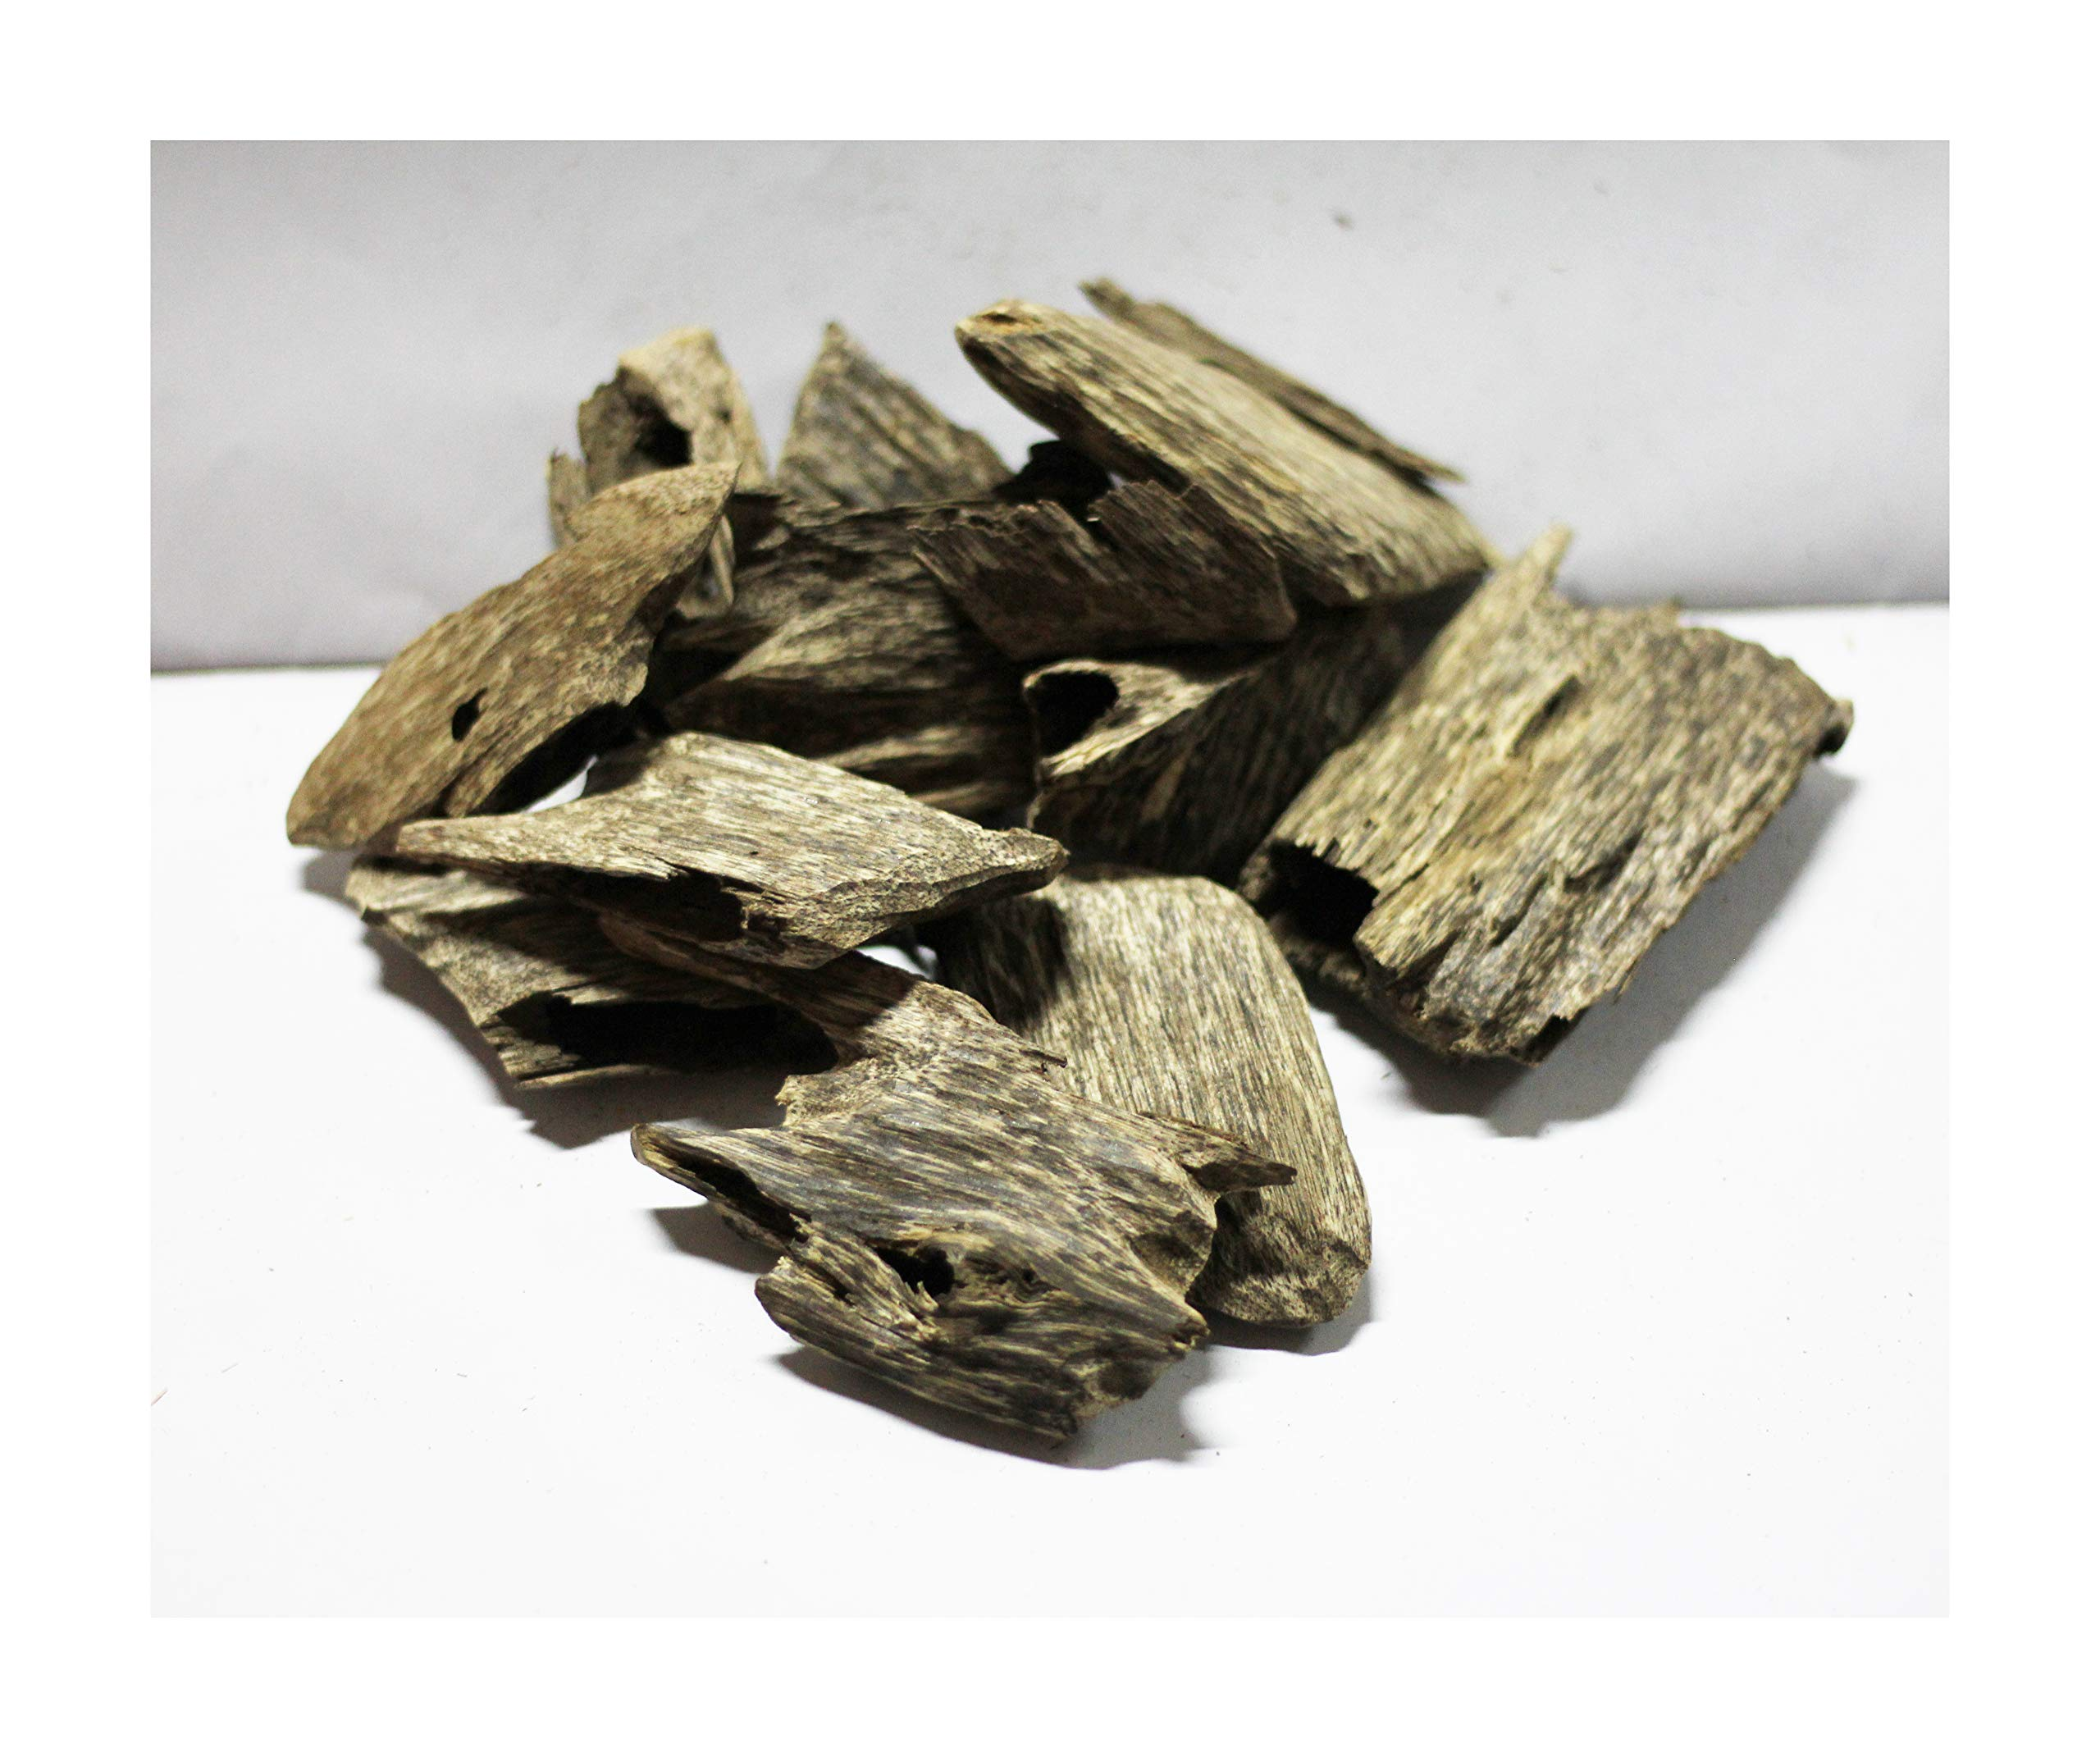 200 gram VIETNAM AGARWOOD CHIP- STEAM YOUR HOUSE-GRADE A by Agarwood-Incense (Image #3)